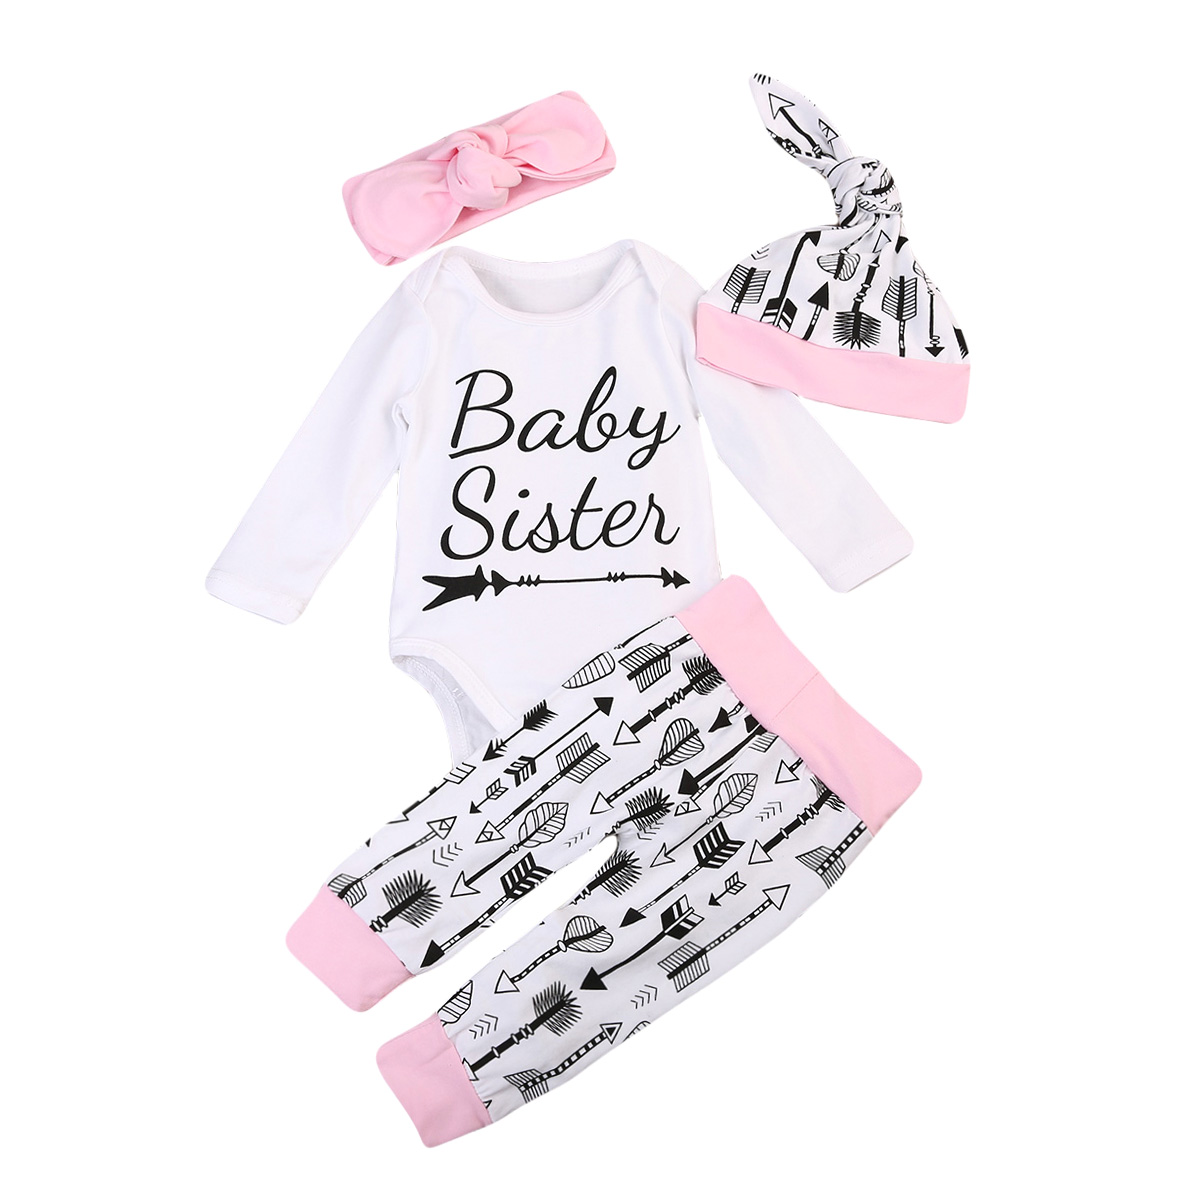 2017 New Autumn Winter Toddler Baby Girls 4PCS Outfits Clothes Cotton Long Sleeve Romper +Pants+Hat+Headnbands